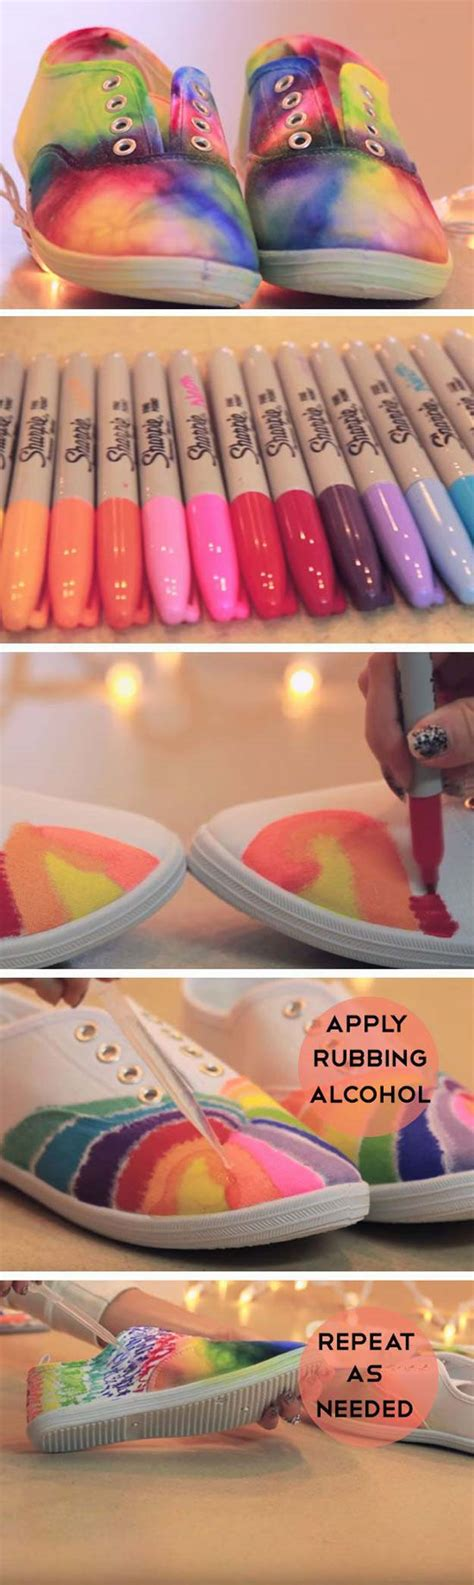 amazing diy crafts 36 diy rainbow crafts that will make you smile all day